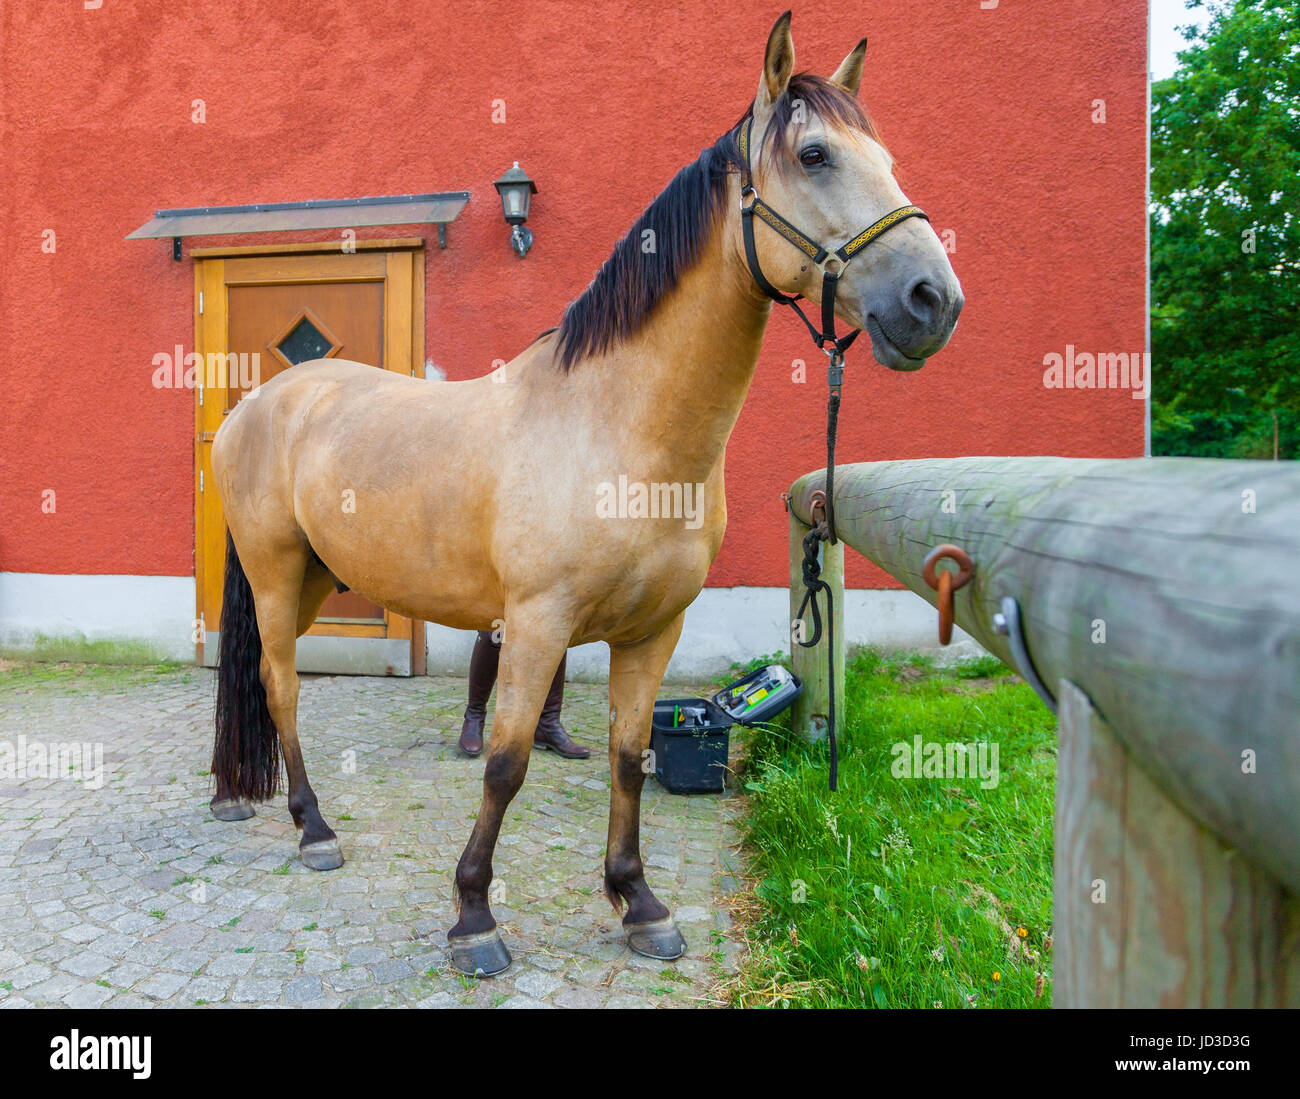 a brown horse stands on a farm - Stock Image